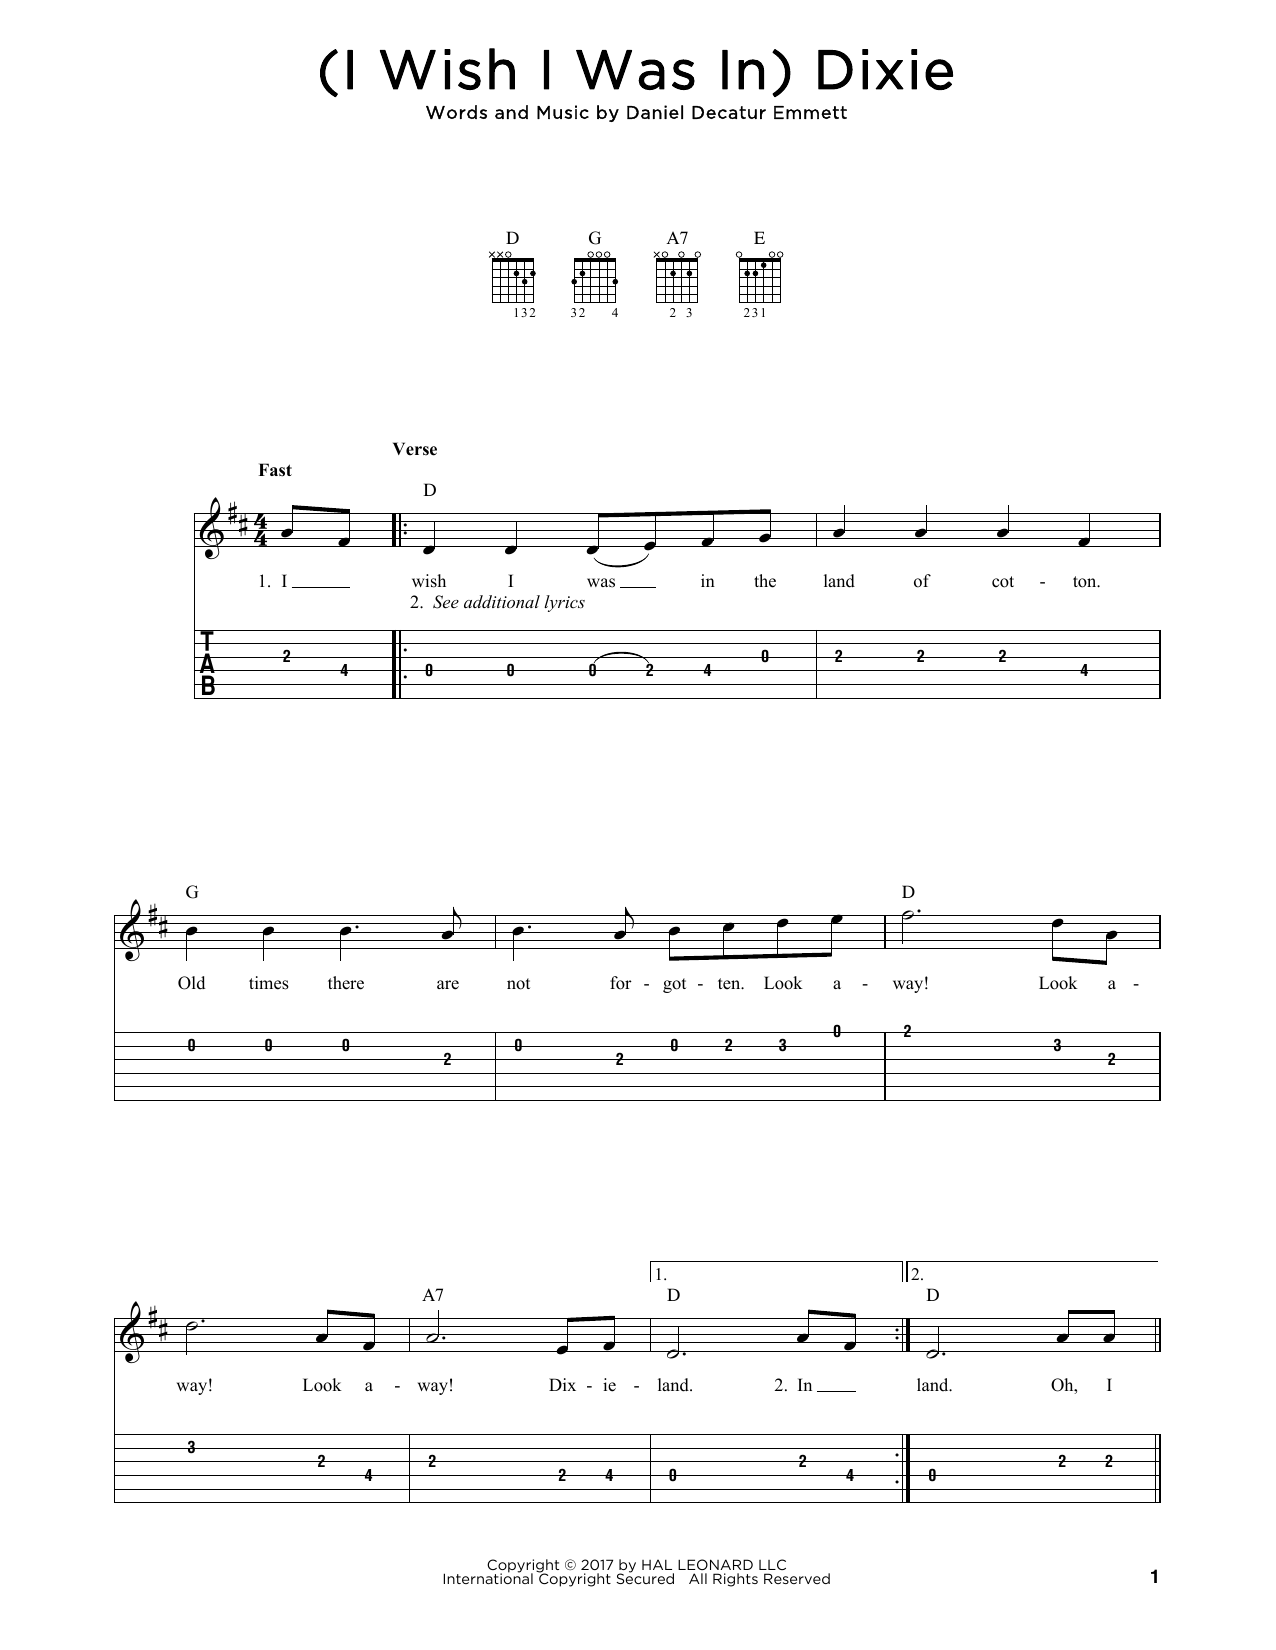 (I Wish I Was In) Dixie Sheet Music